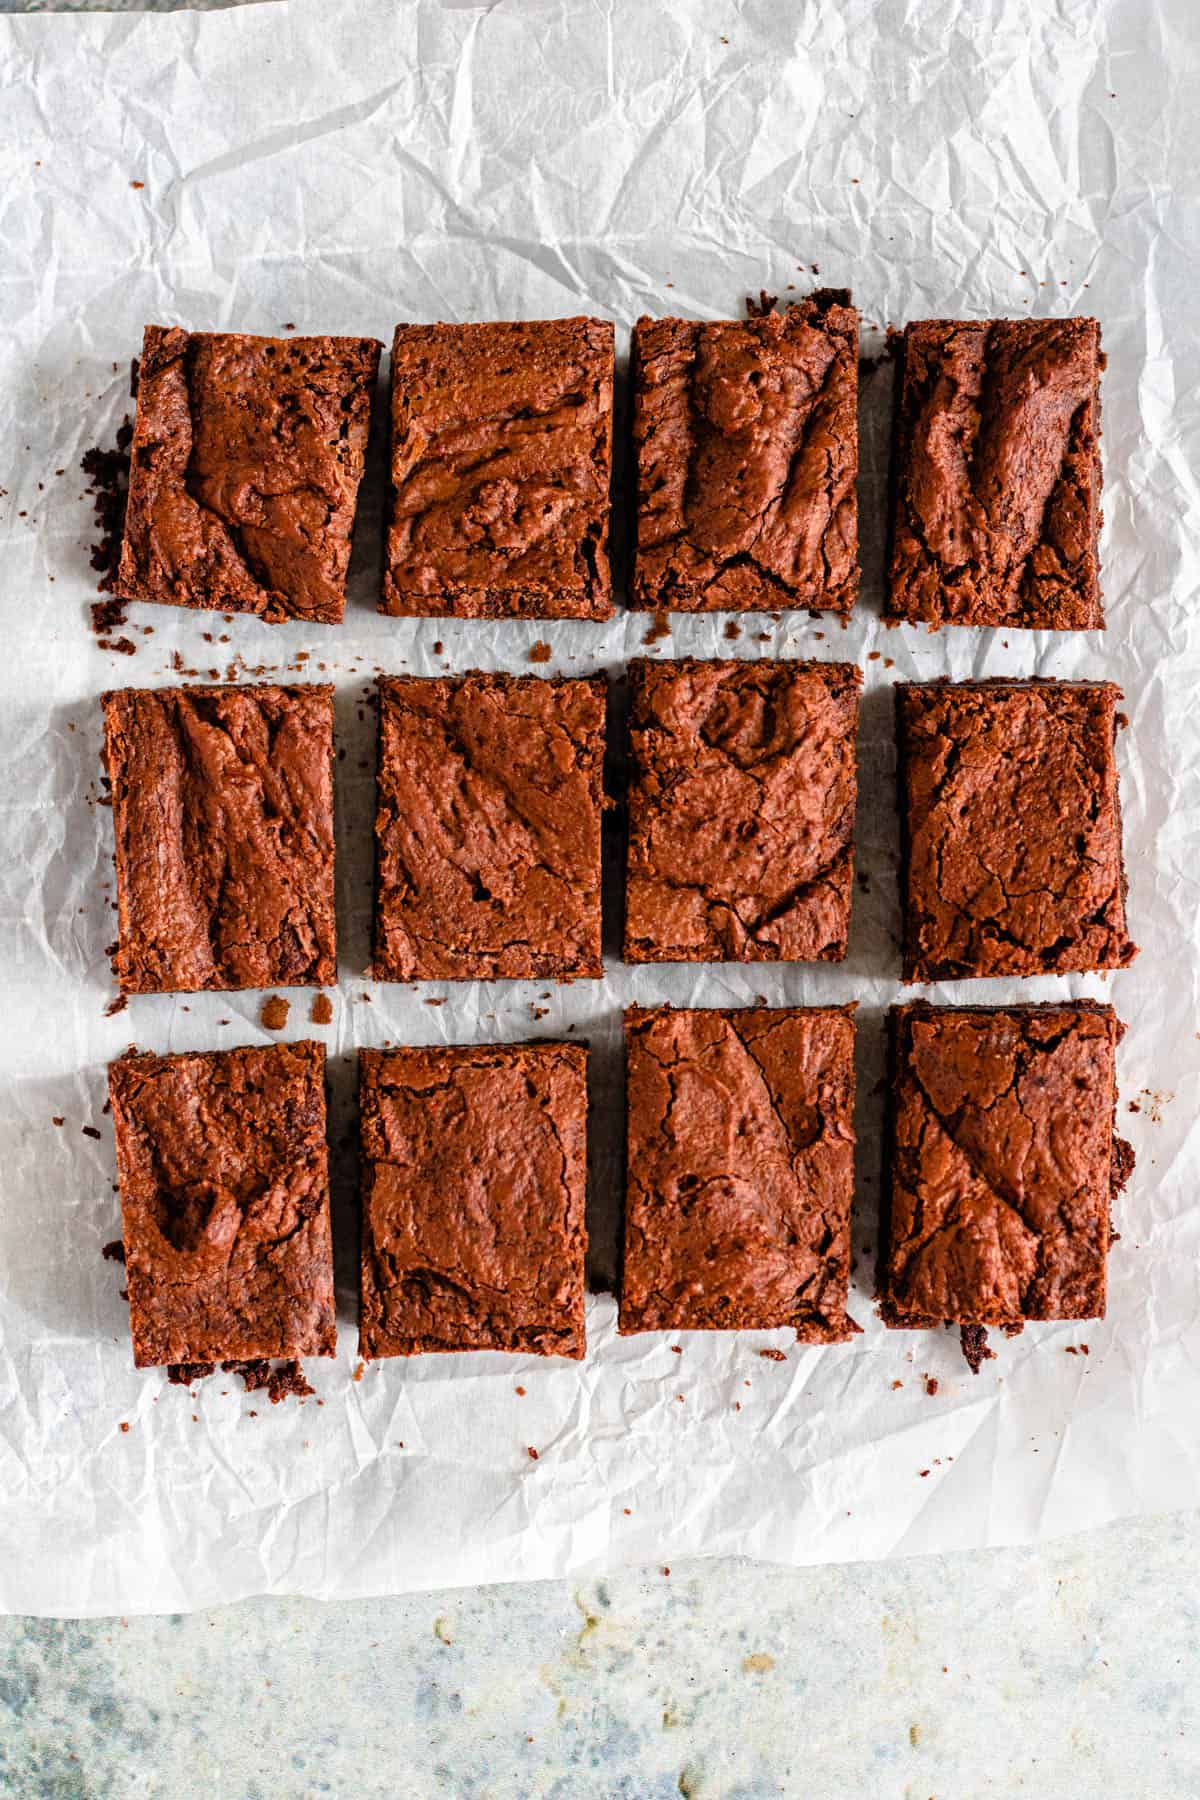 12 brownies cut into rectangles